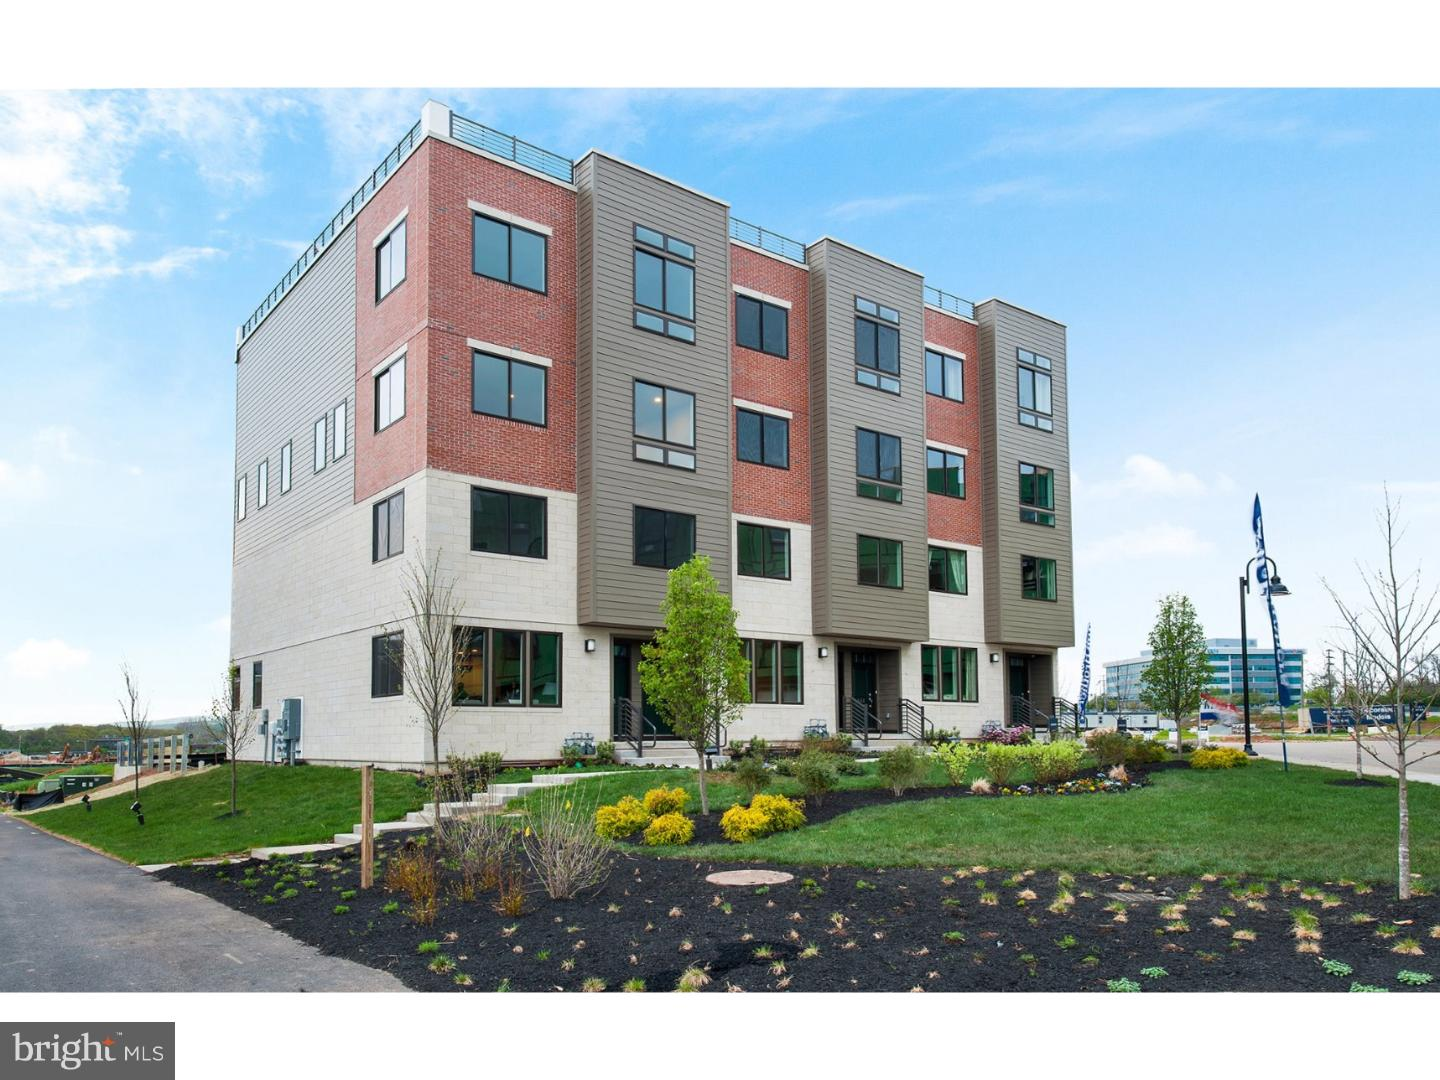 1007 LAKEVIEW COURT 1007, KING OF PRUSSIA, PA 19406